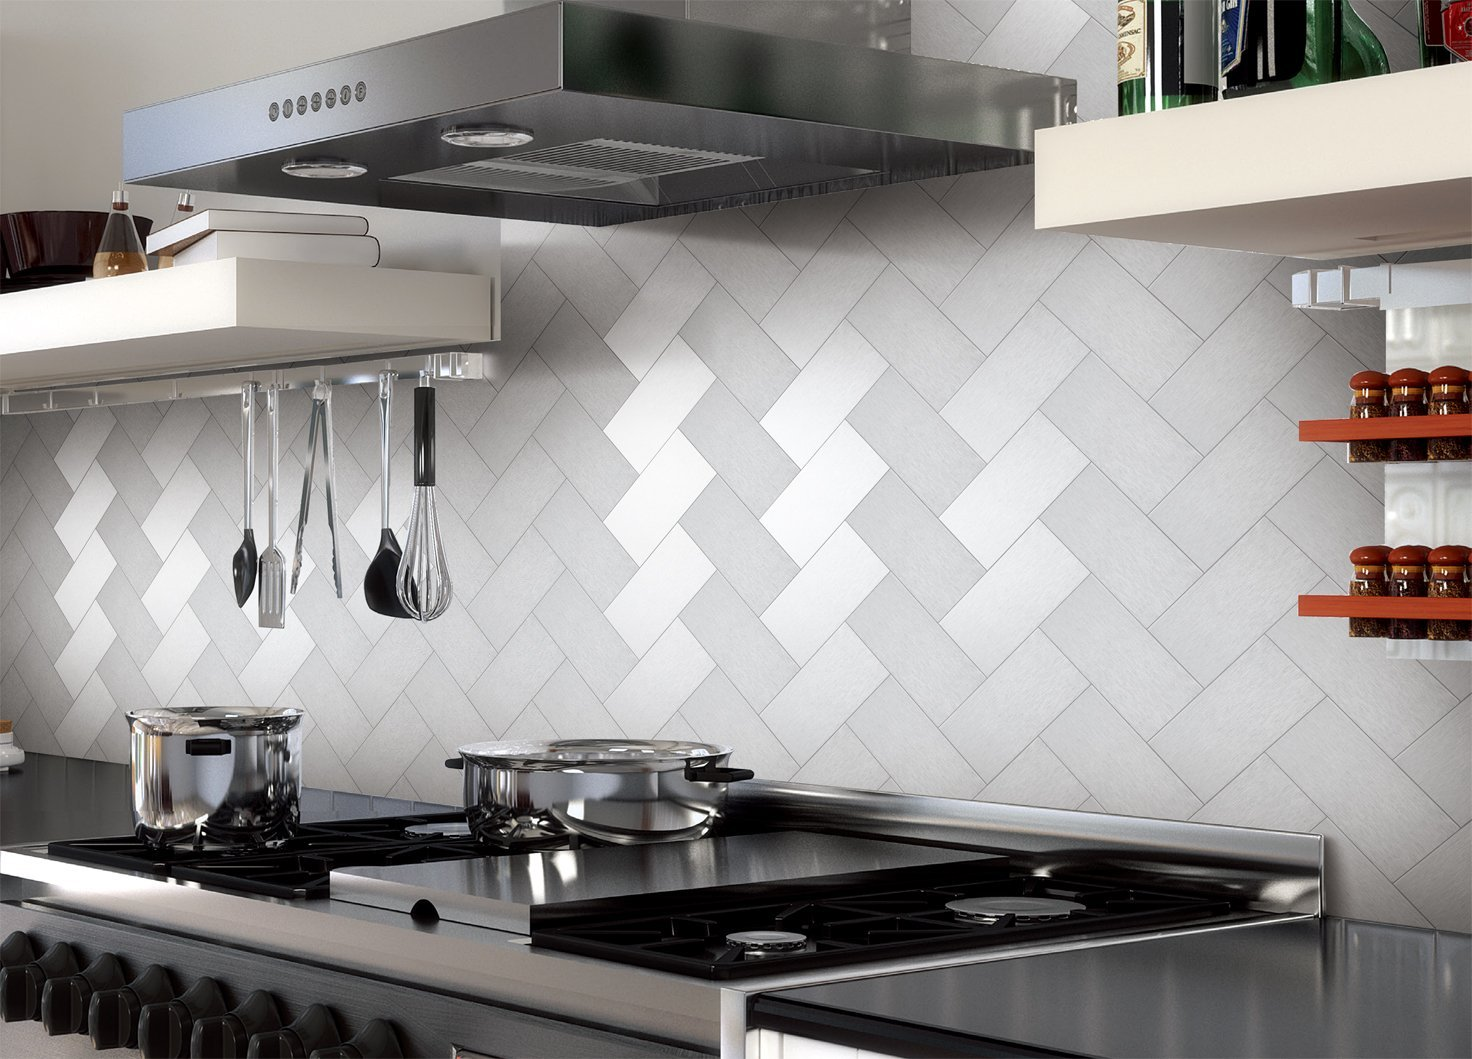 Stainless Steel Backsplash Tiles | The Tile Home Guide